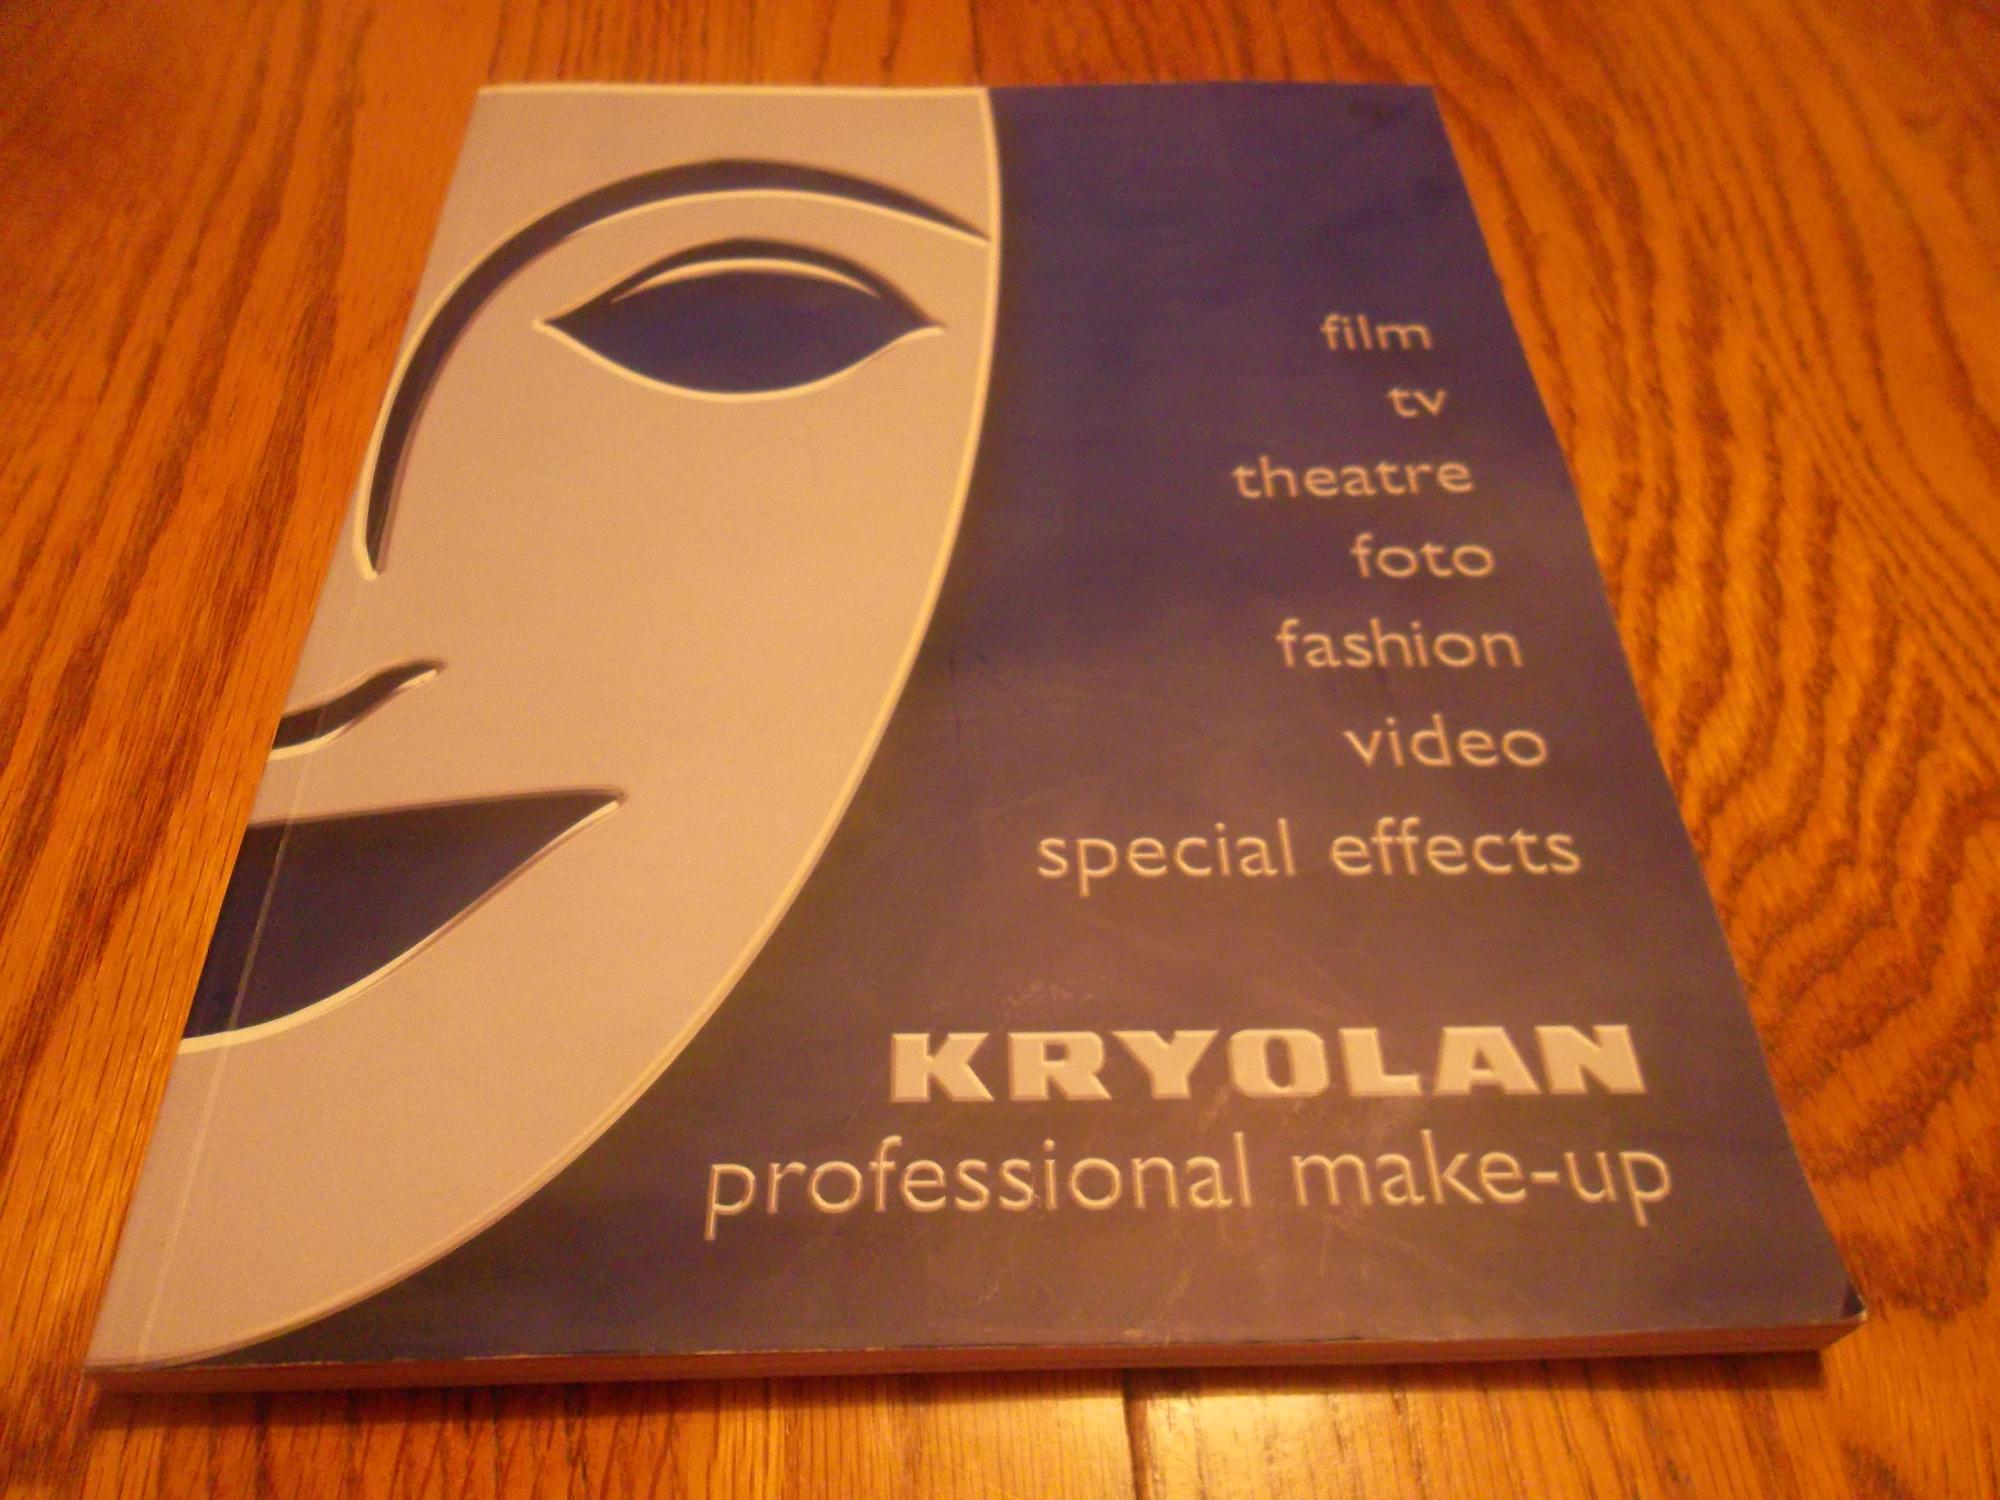 Kryolan; Professional Make-up -Film, tv, theatre, foto, fashion, video, special effects Kryolan Very Good Softcover